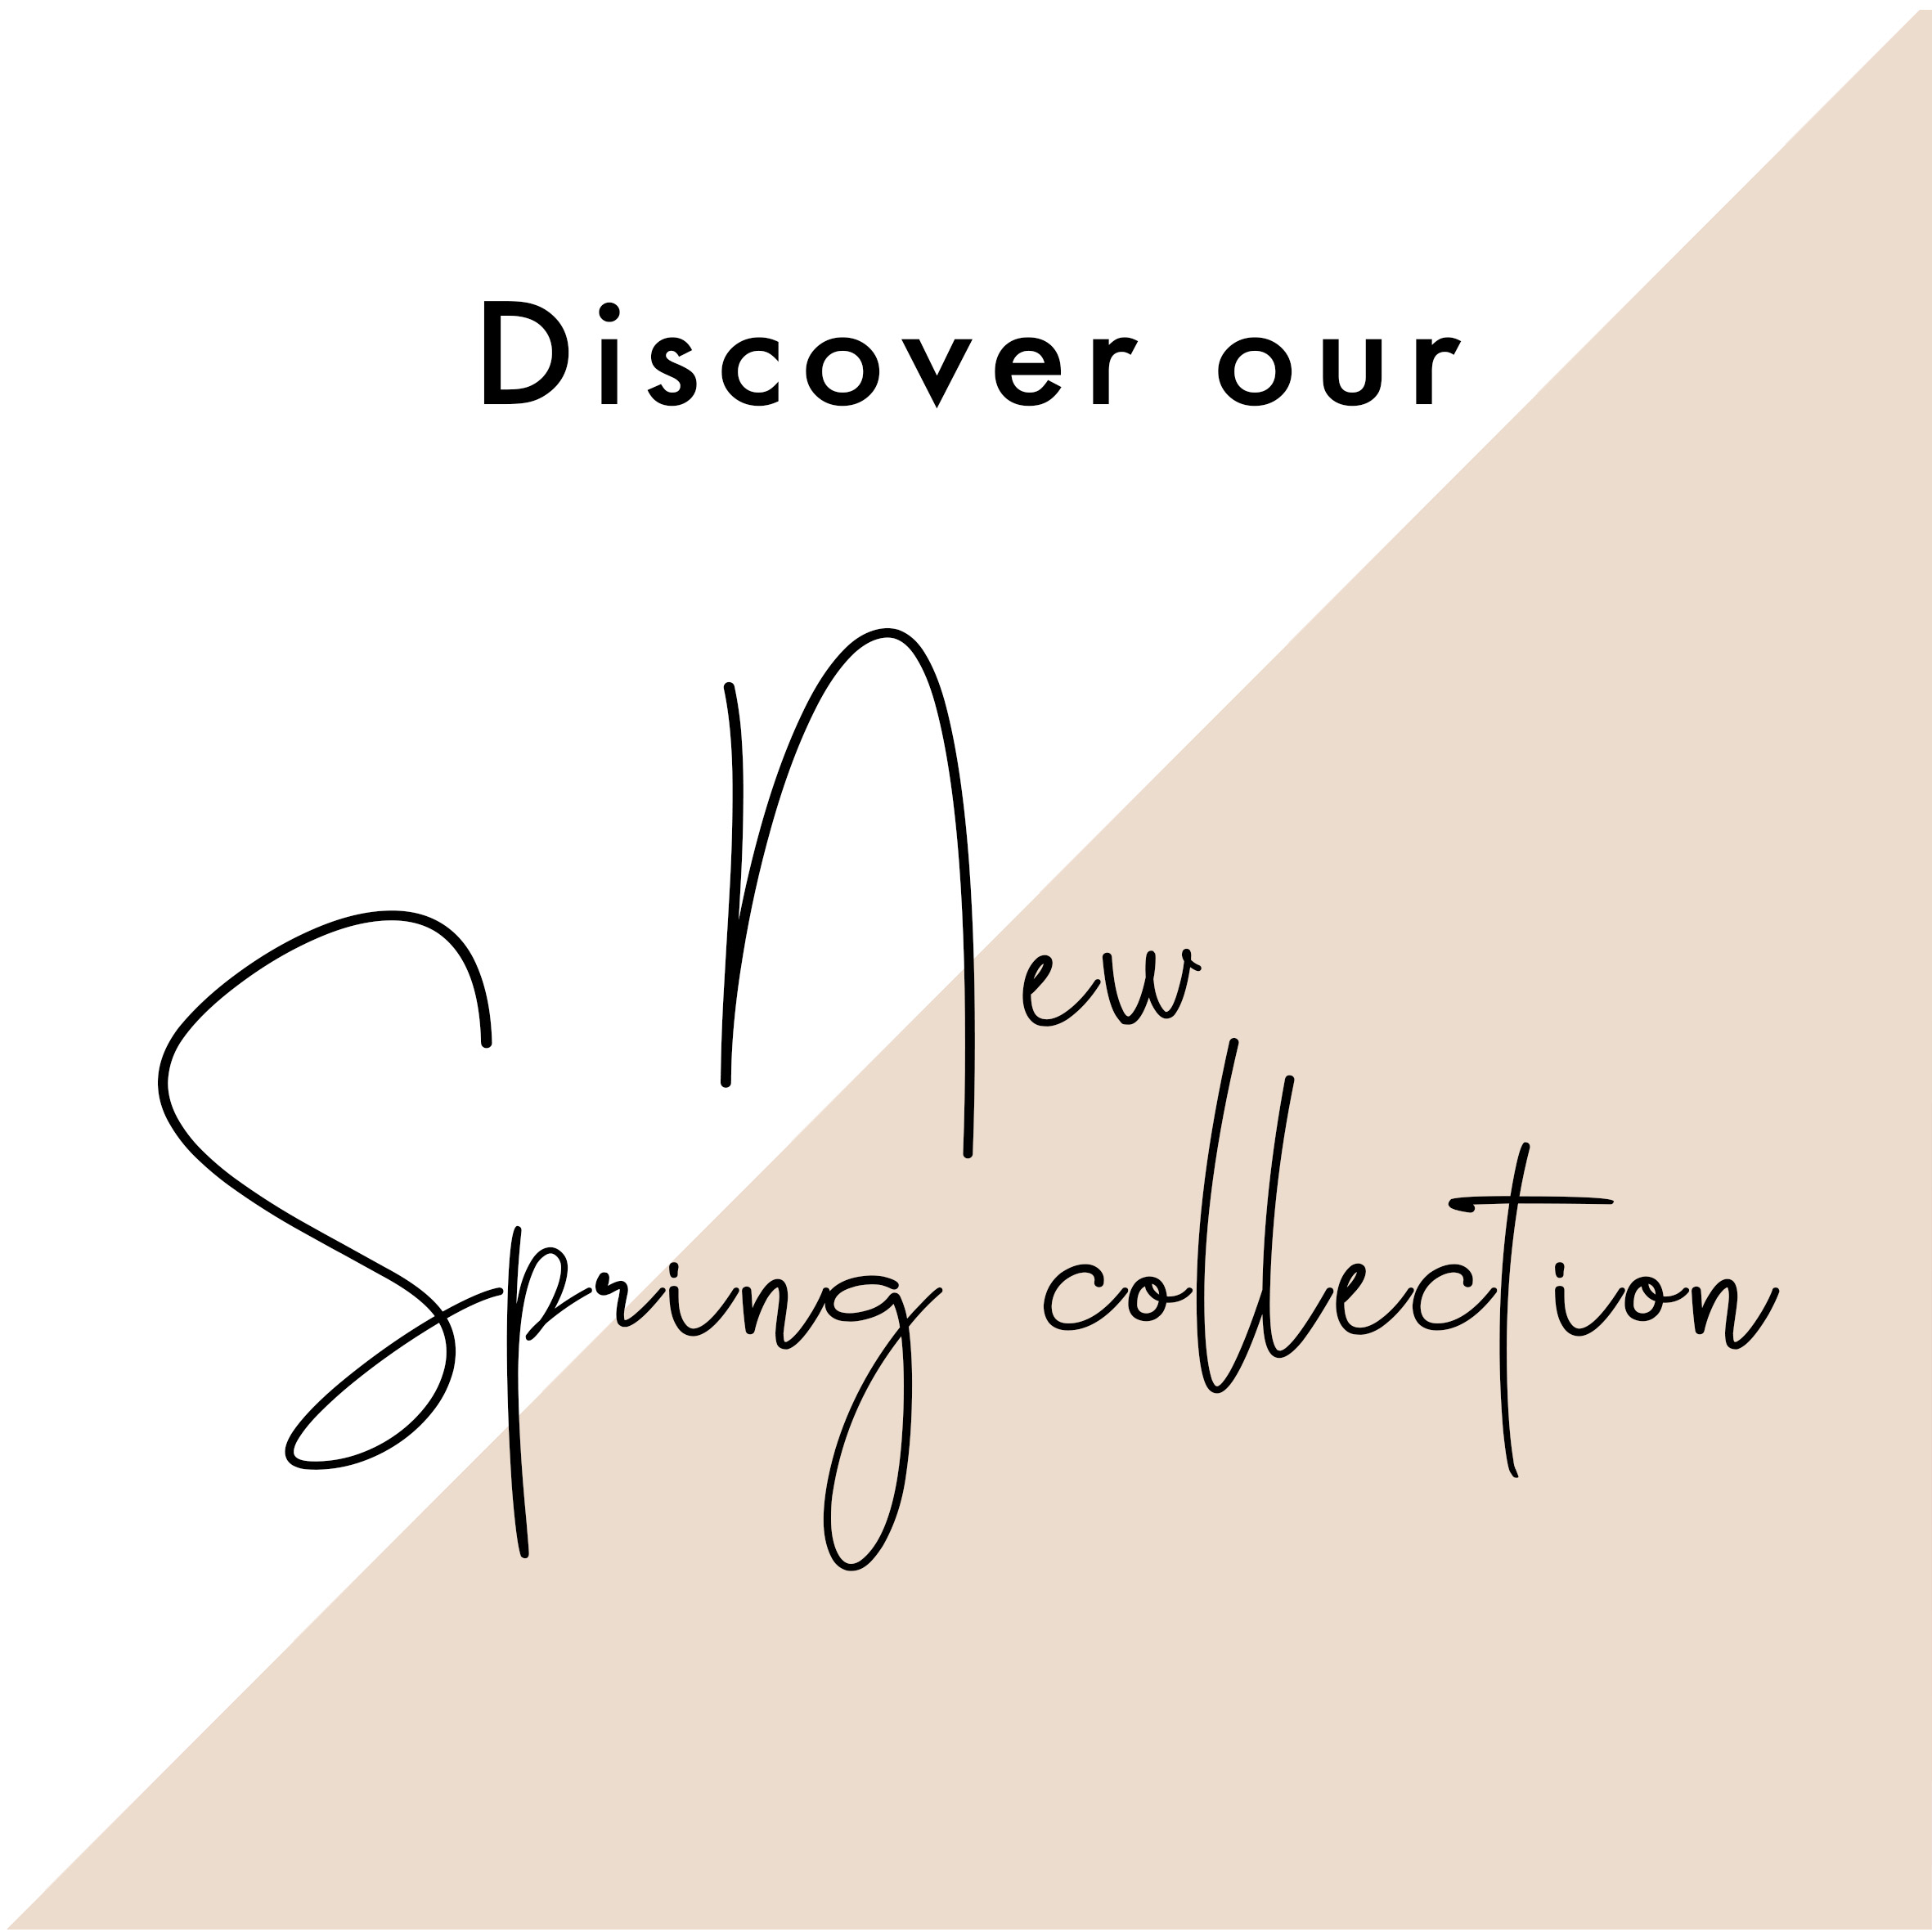 Sping collection.jpg